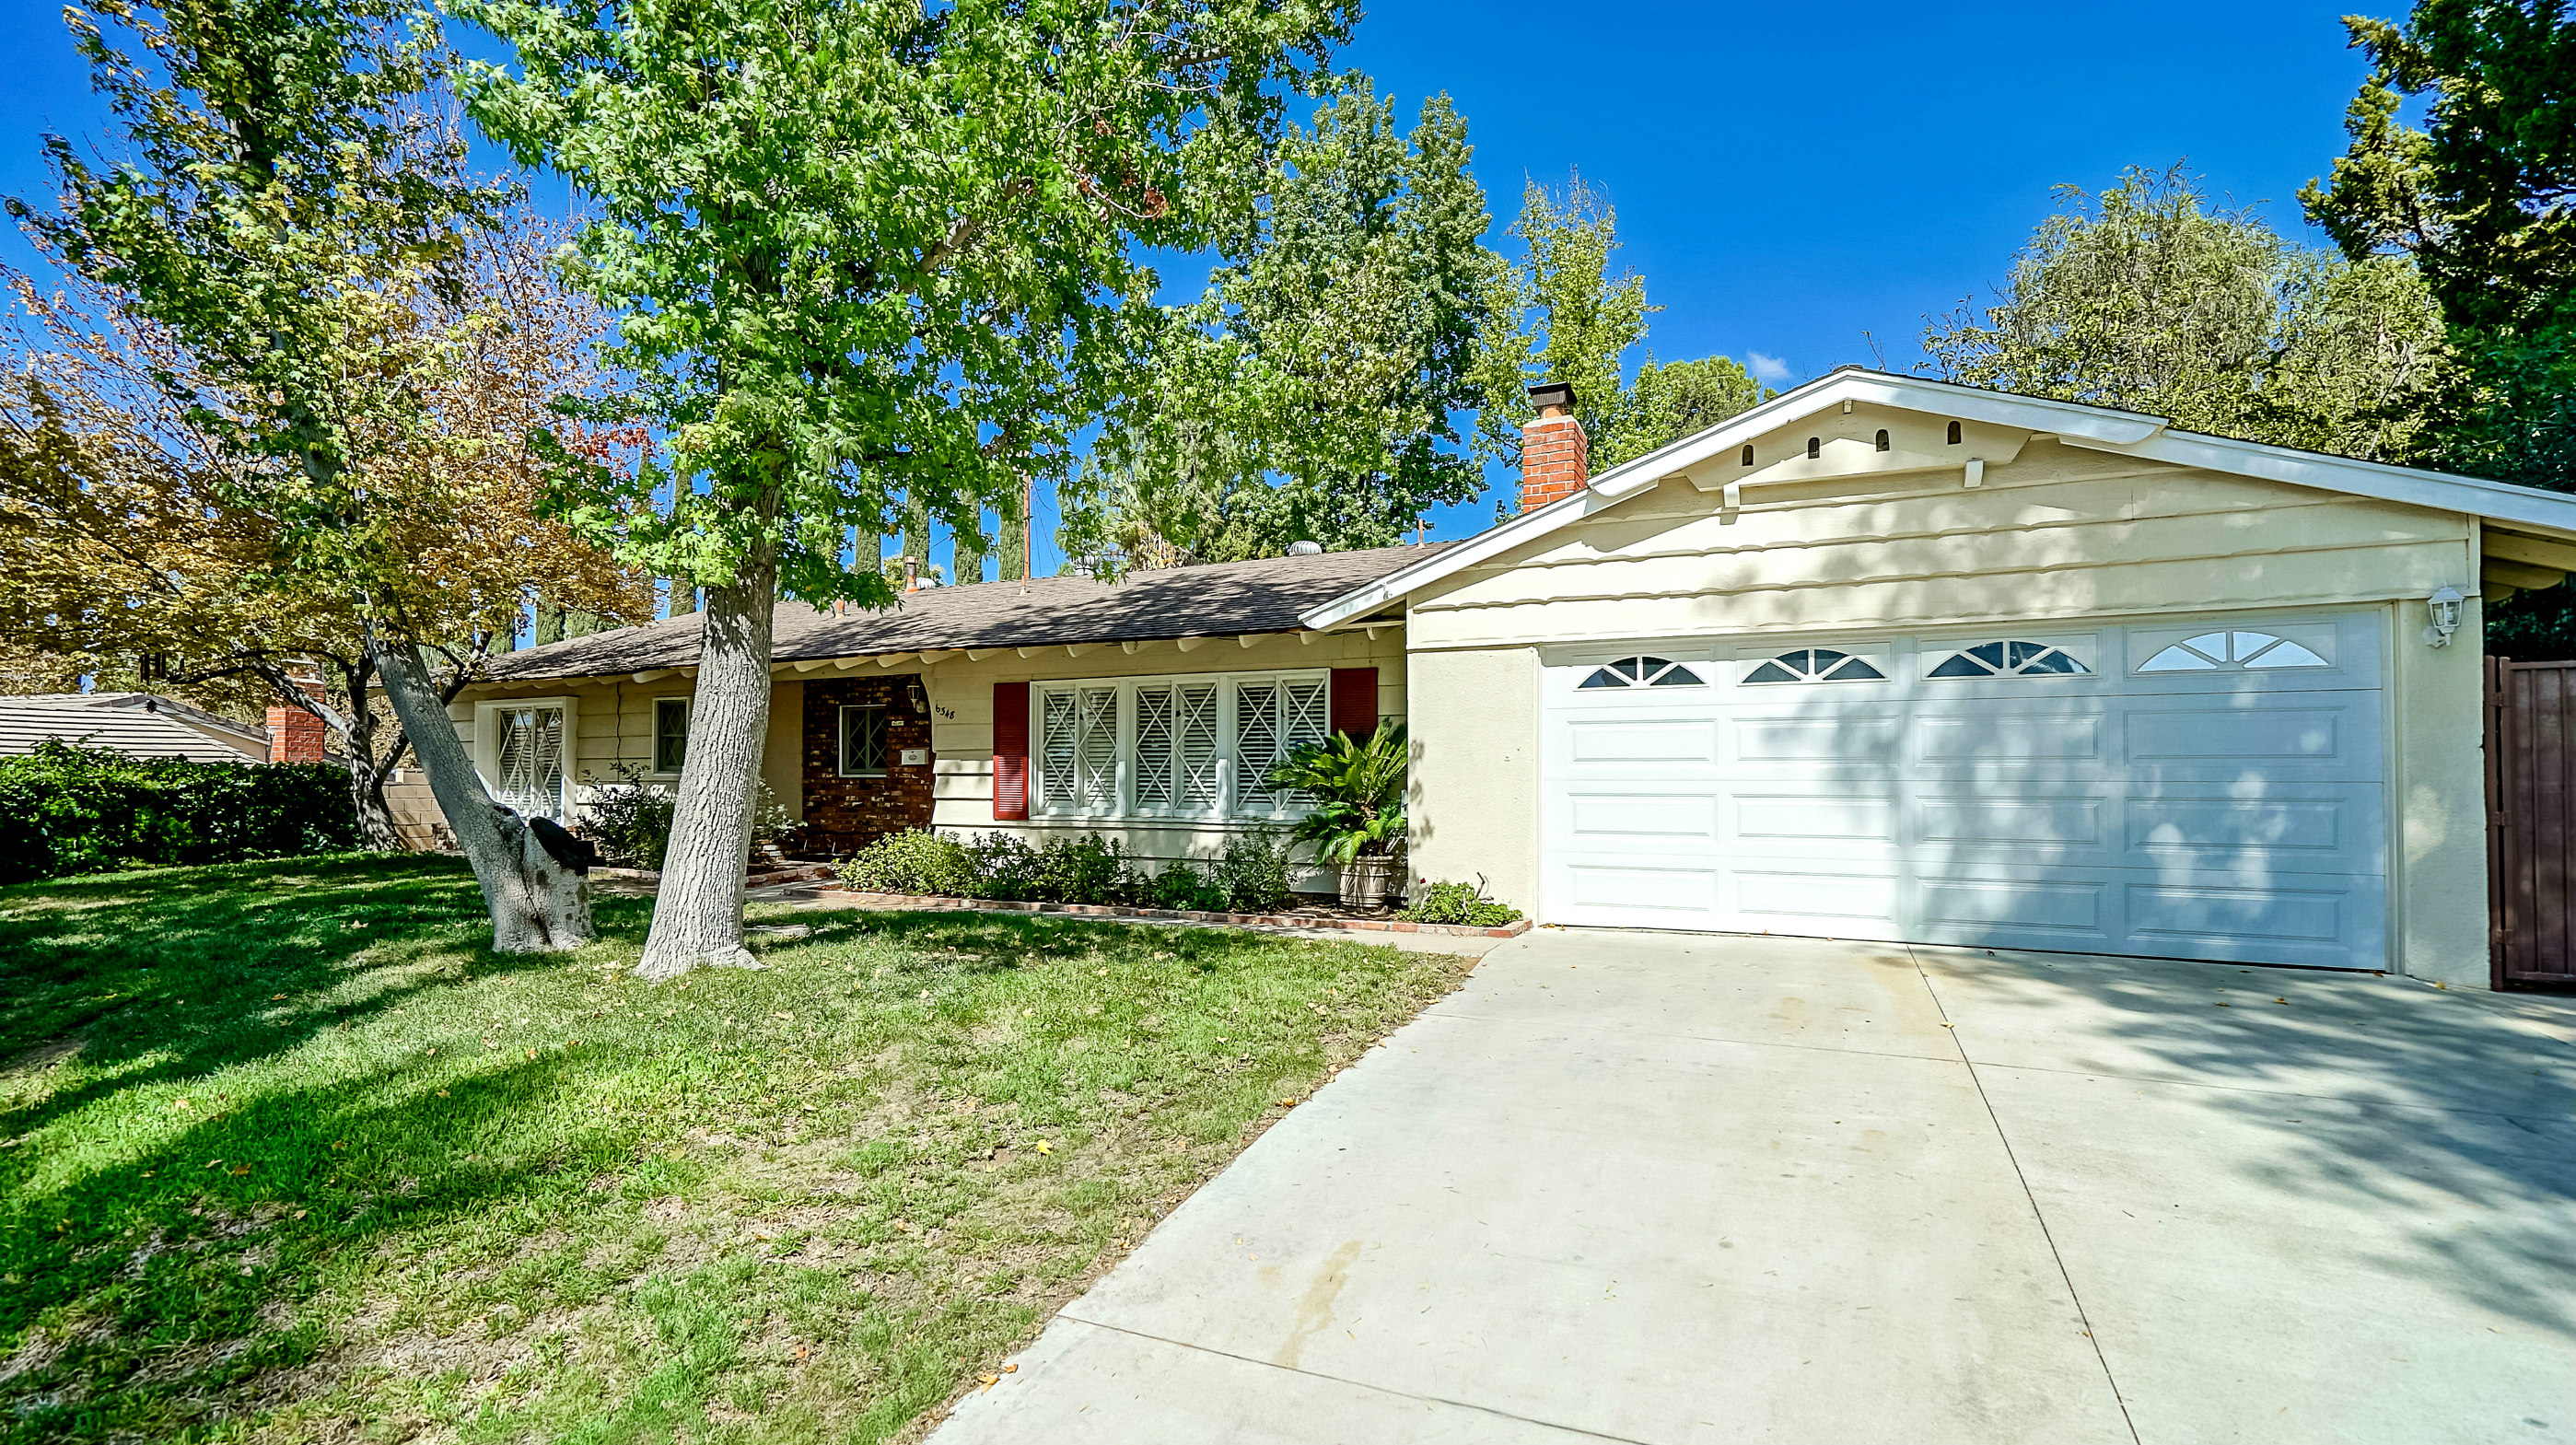 6348 Glen Aire Ave., Riverside 92506 listed by THE SISTER TEAM